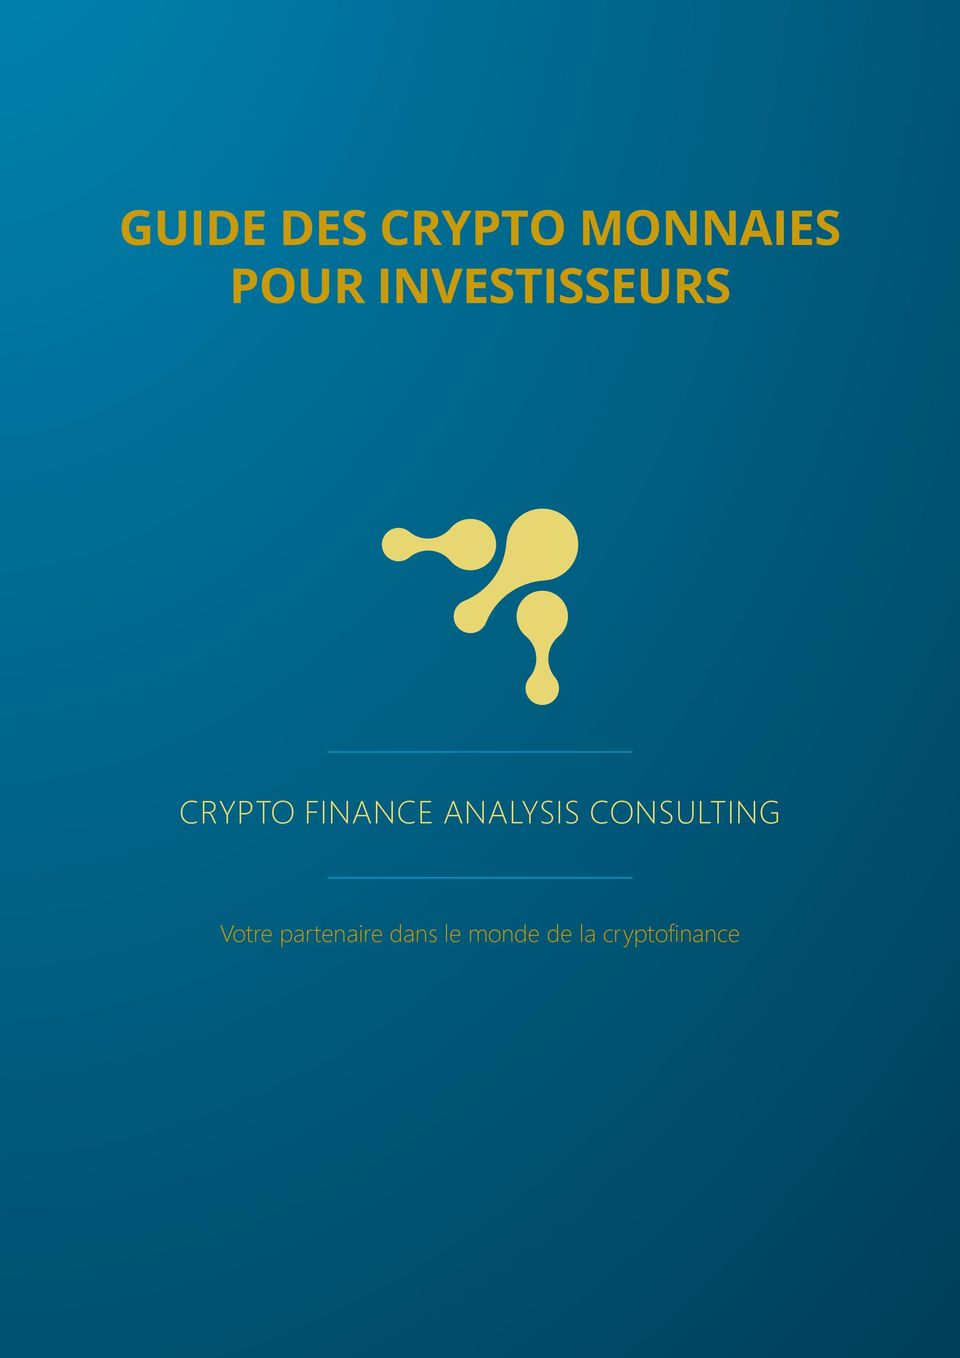 ANALYSIS CONSULTING Votre